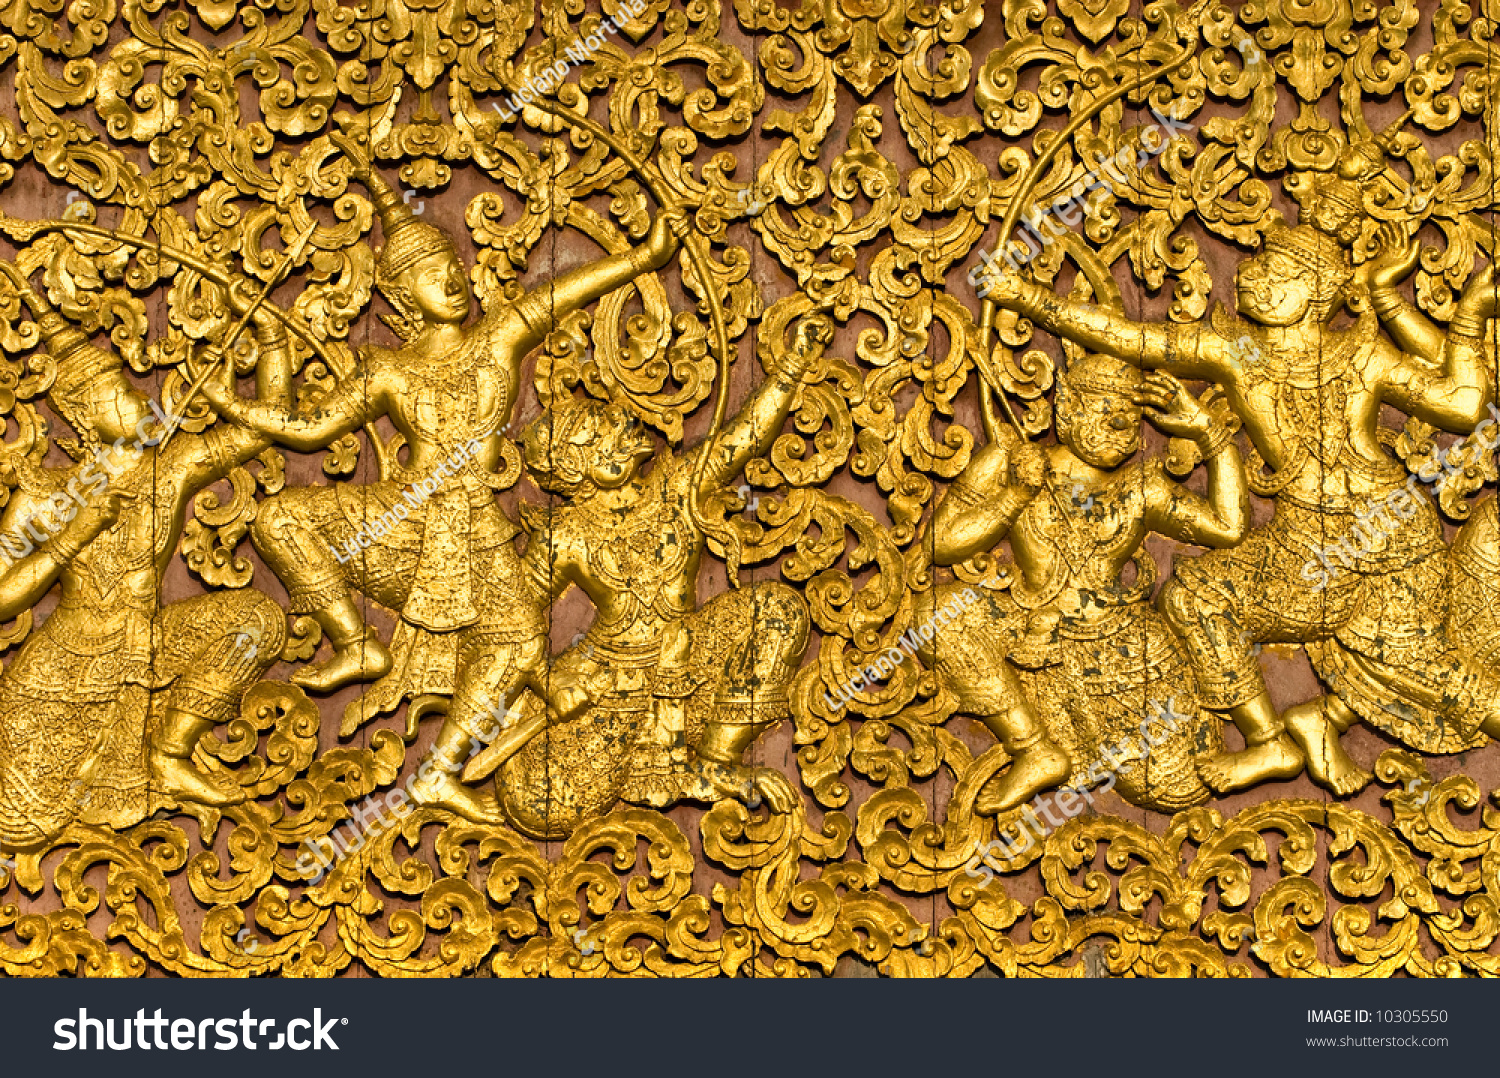 The ramayana epic carved on a wood door inside a temple Luang Prabang Laos